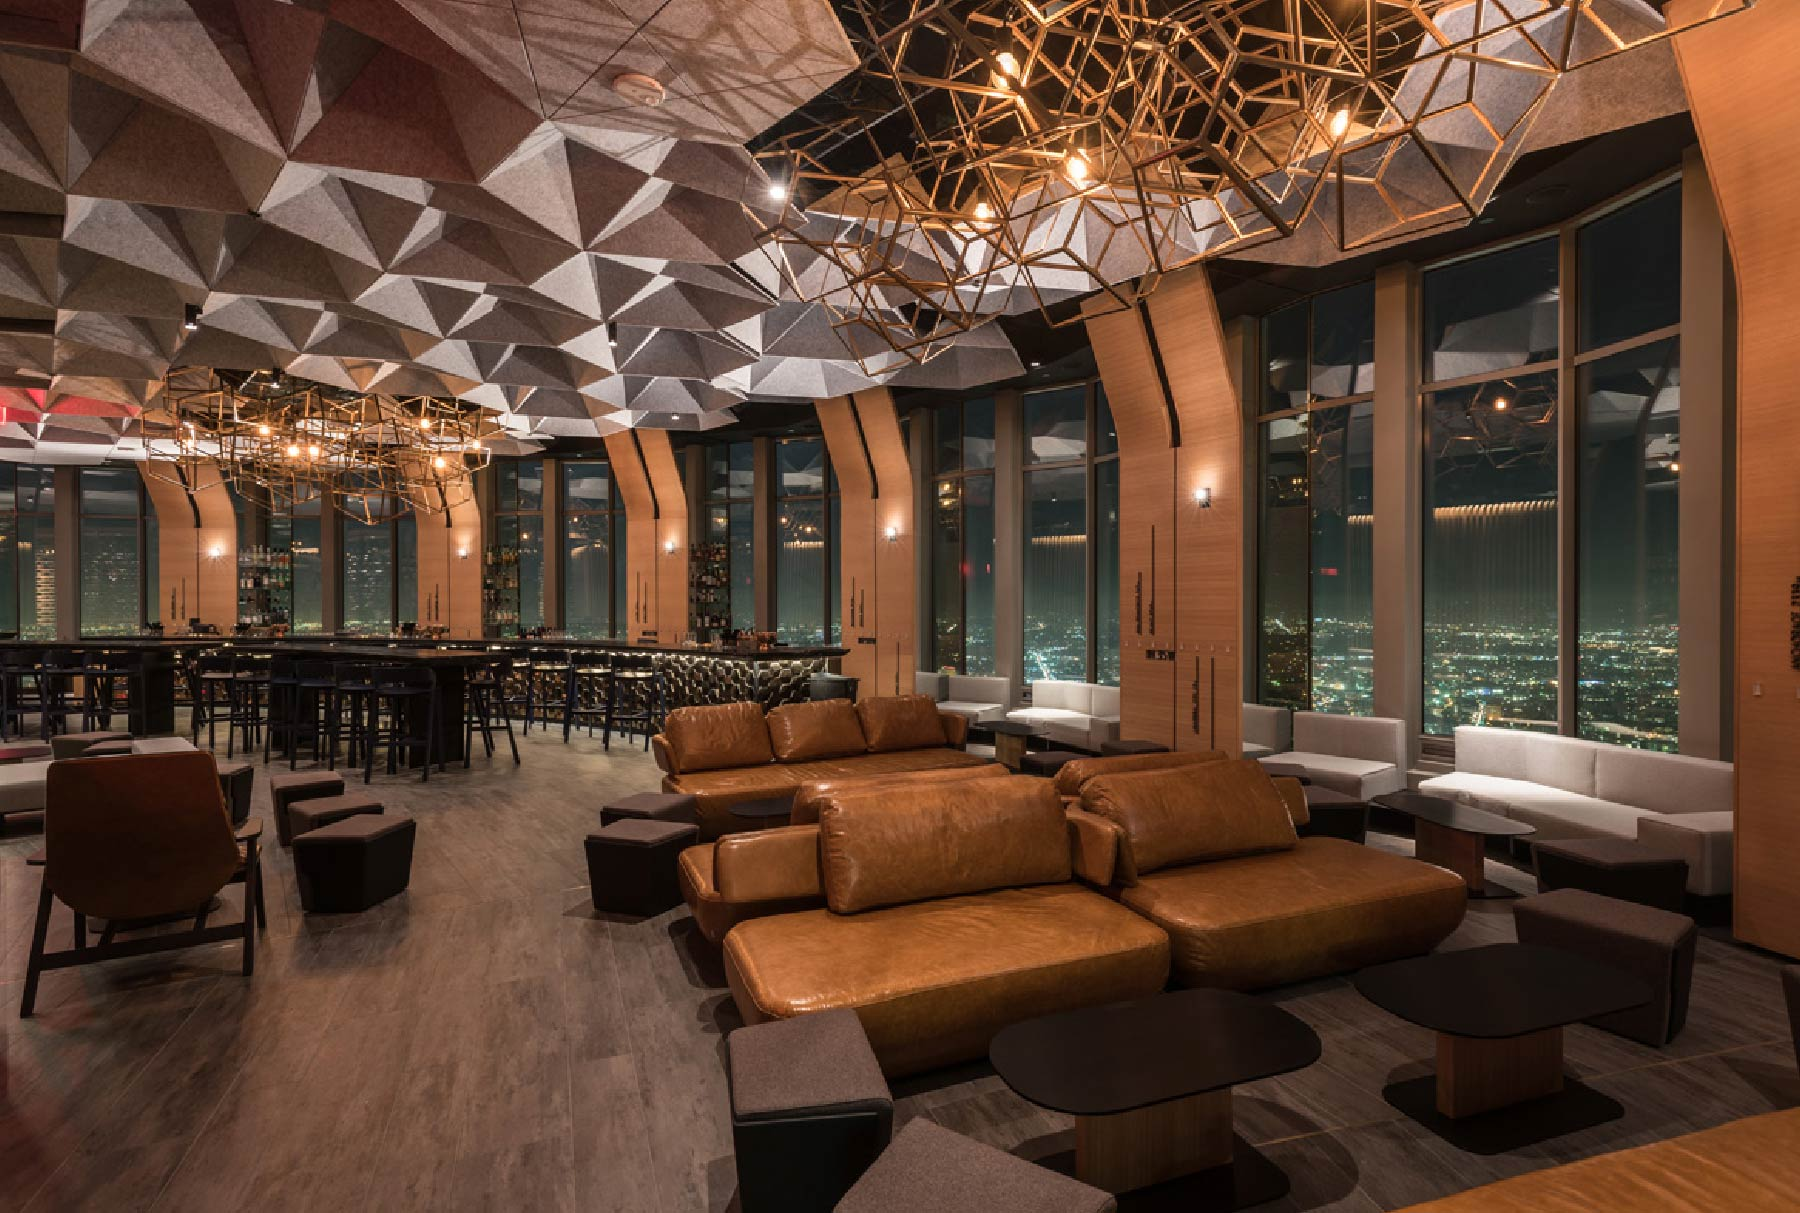 Arktura Solution Studio 71 Above restaurant with a faceted acoustic ceiling system